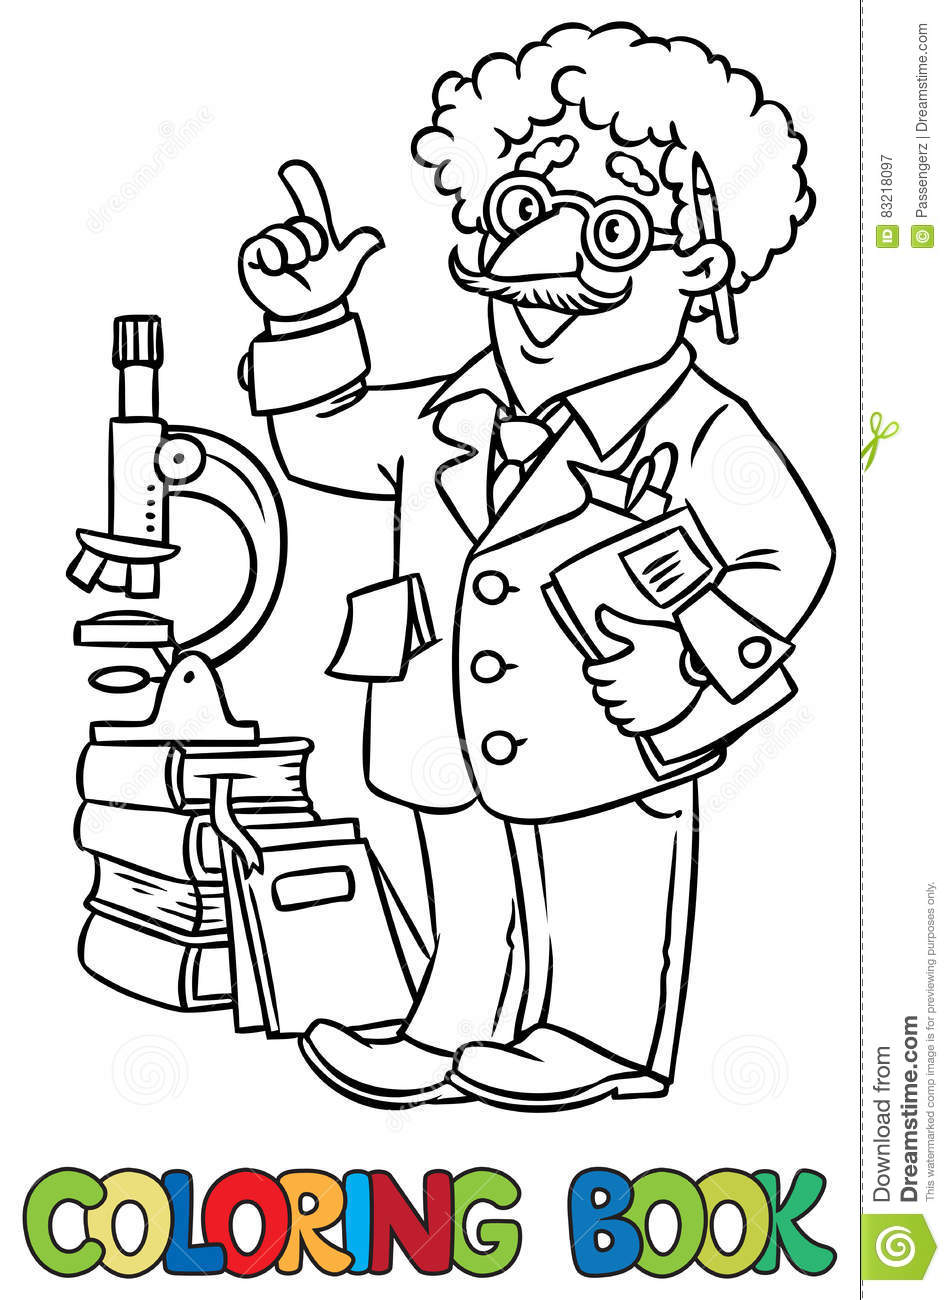 Coloring Book Of Funny Scientist Or Inventor Stock Vector